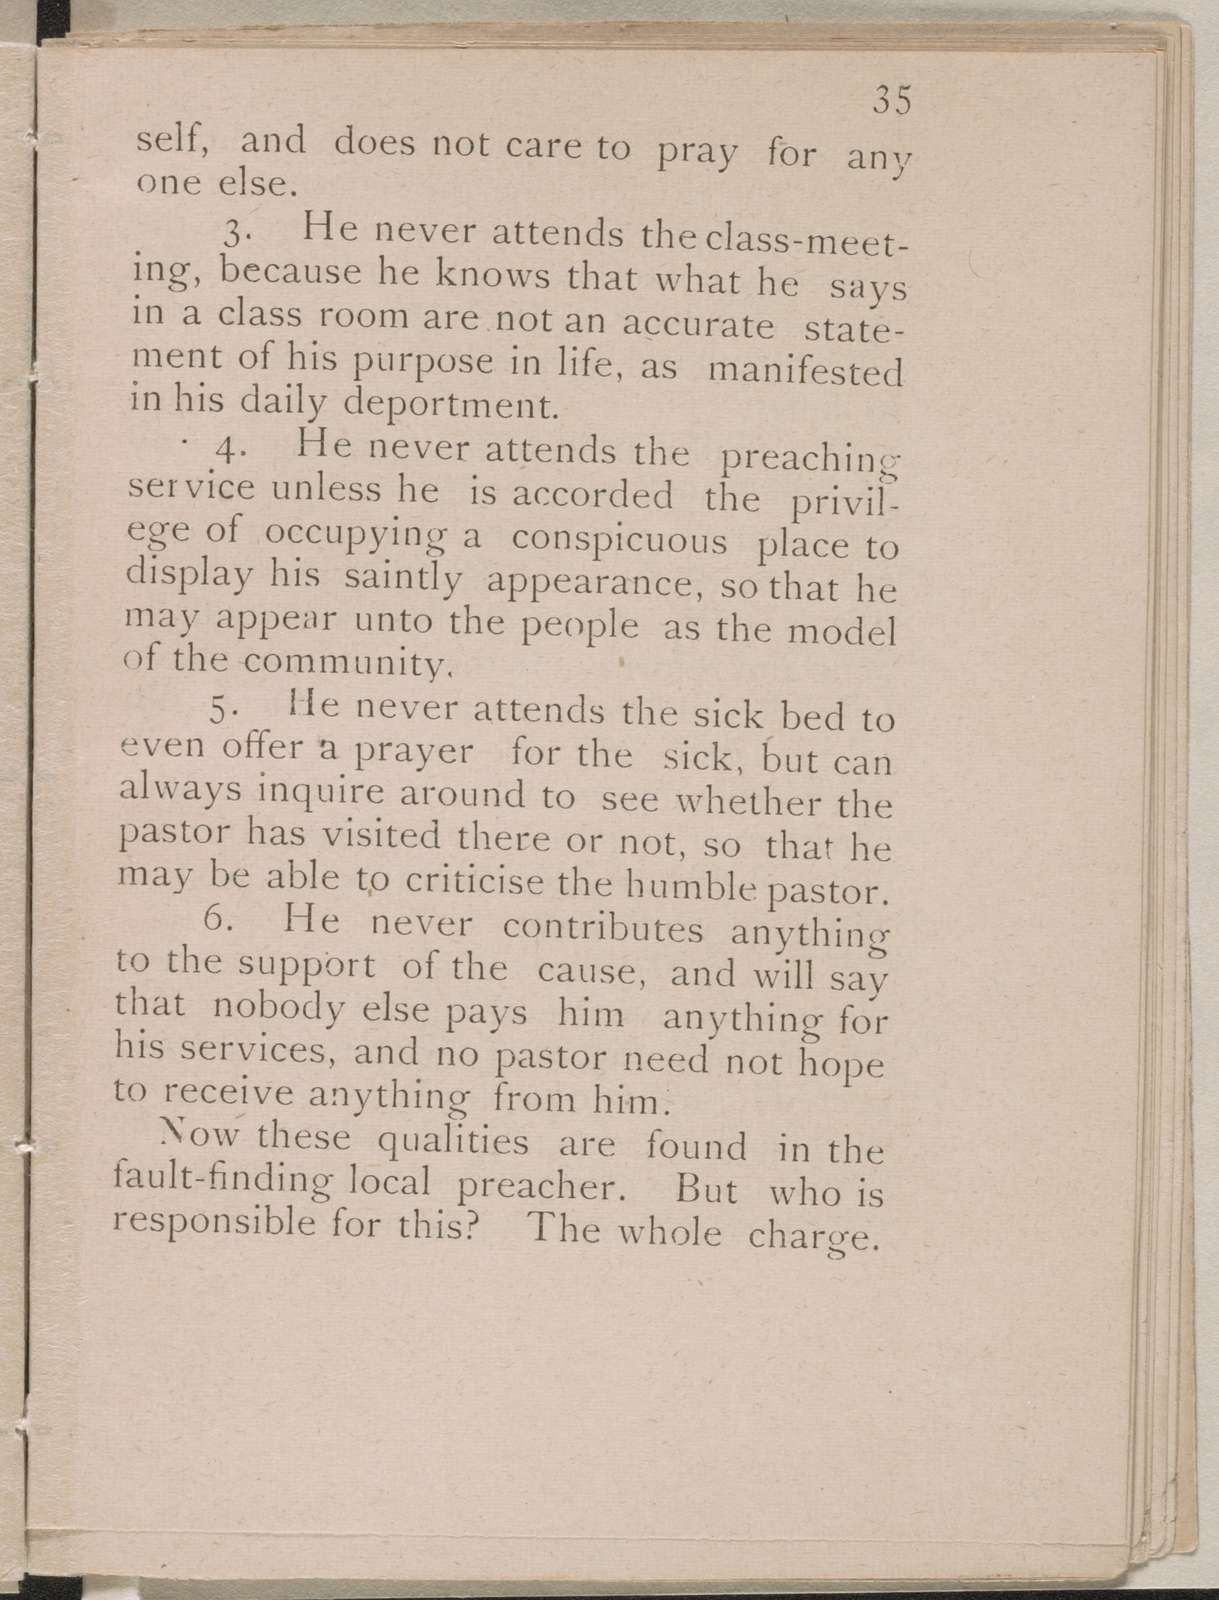 How to get church members to work : a brief and pointed exposition of the causes of carelessness in the church, among pastors, officers, and members : with advisatory hints on how to remove them